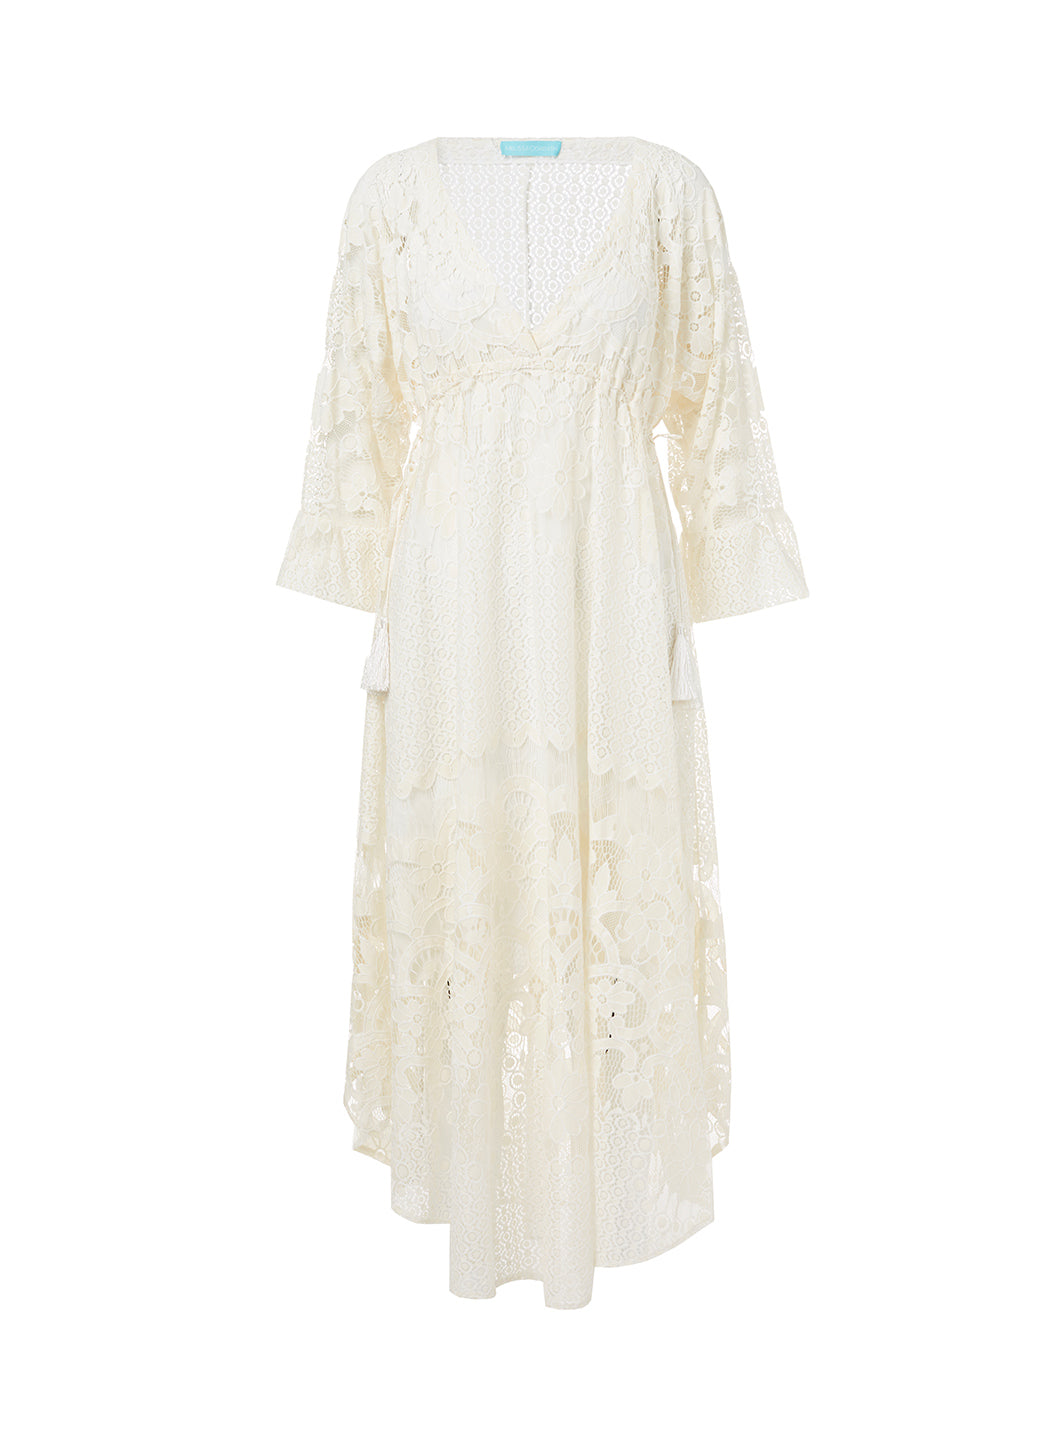 Melissa Cream Lace Tie-Side Midi Dress - Melissa Odabash Dresses & Kaftans